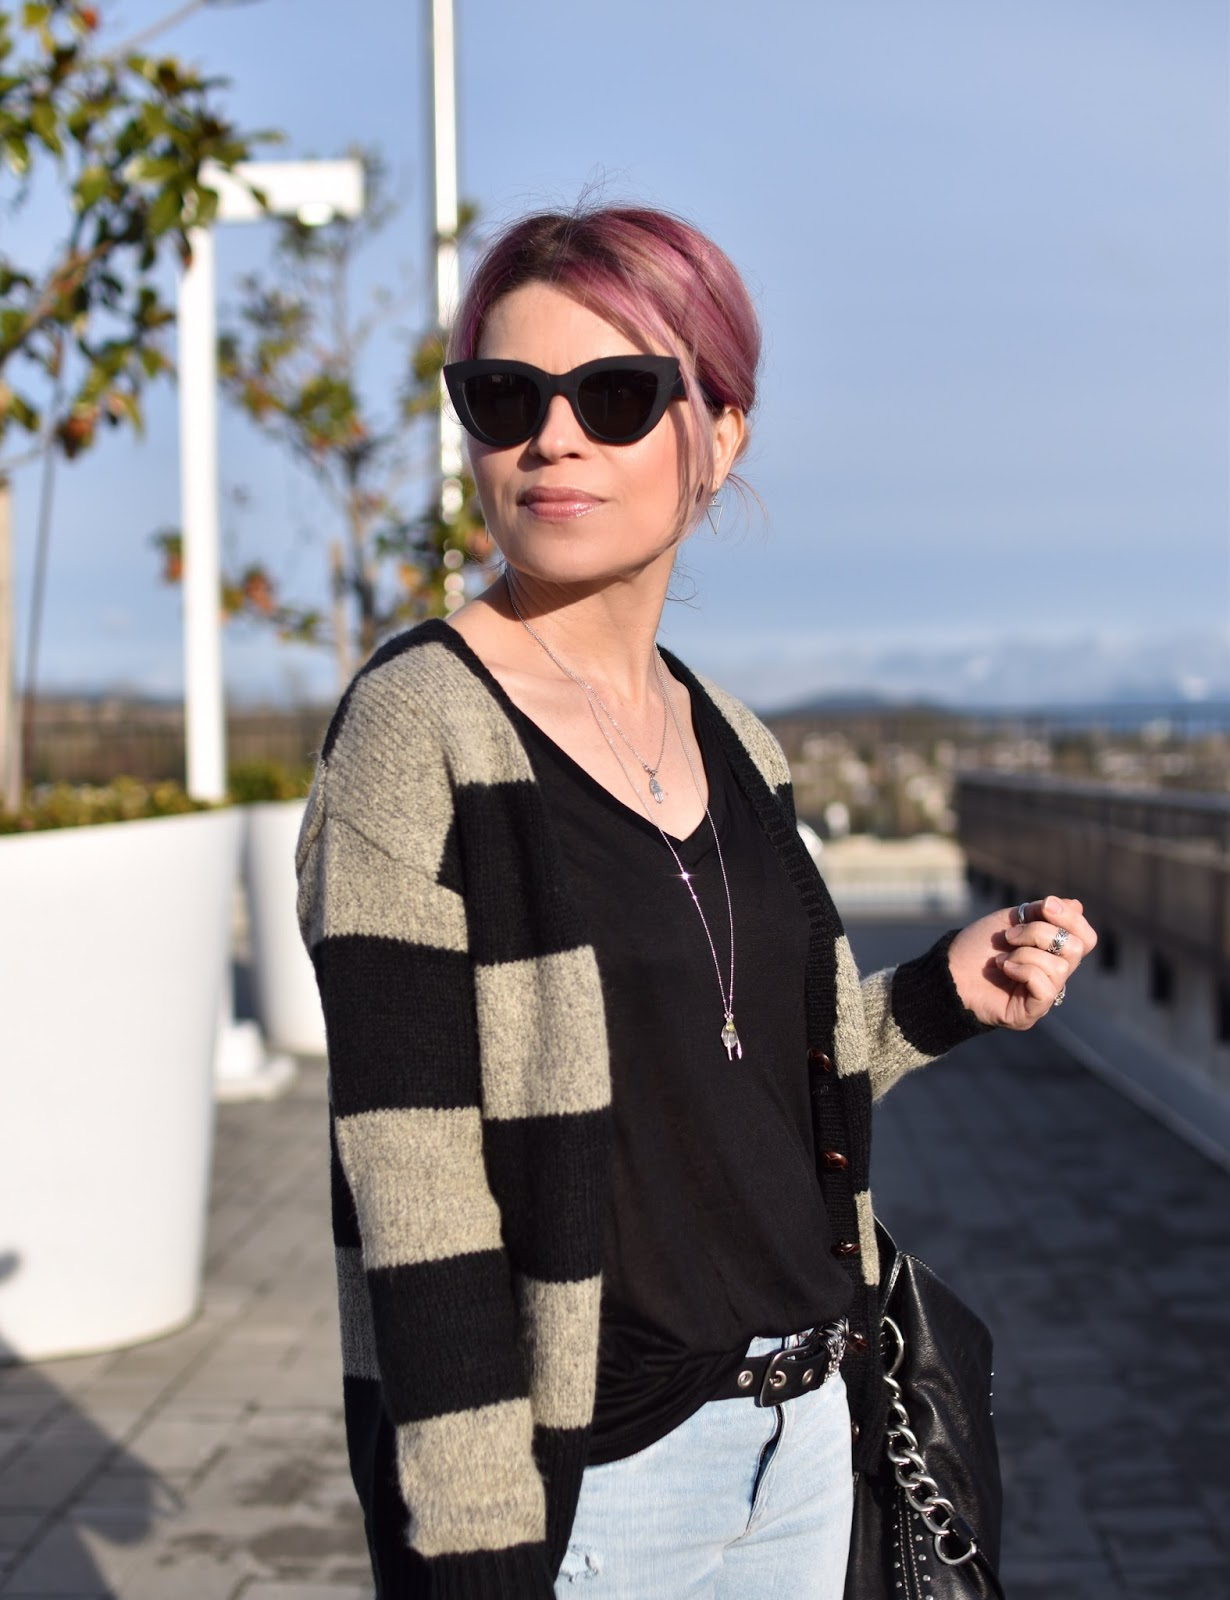 Monika Faulkner outfit inspiration - striped grandpa cardigan, slouchy tee, cat-eye sunglasses